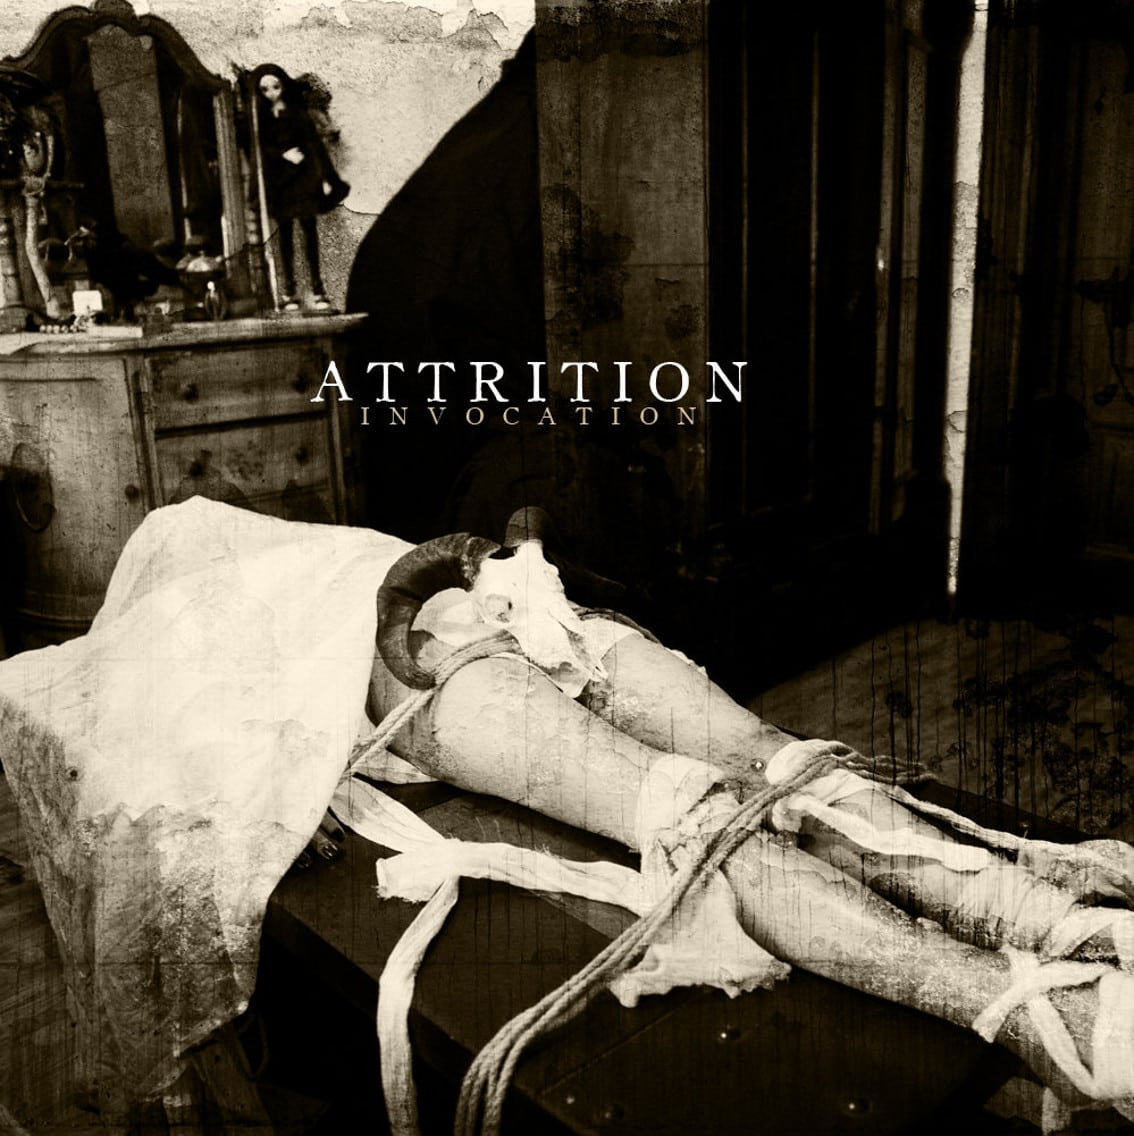 Attrition gives away horror film score 'Invocation' for free